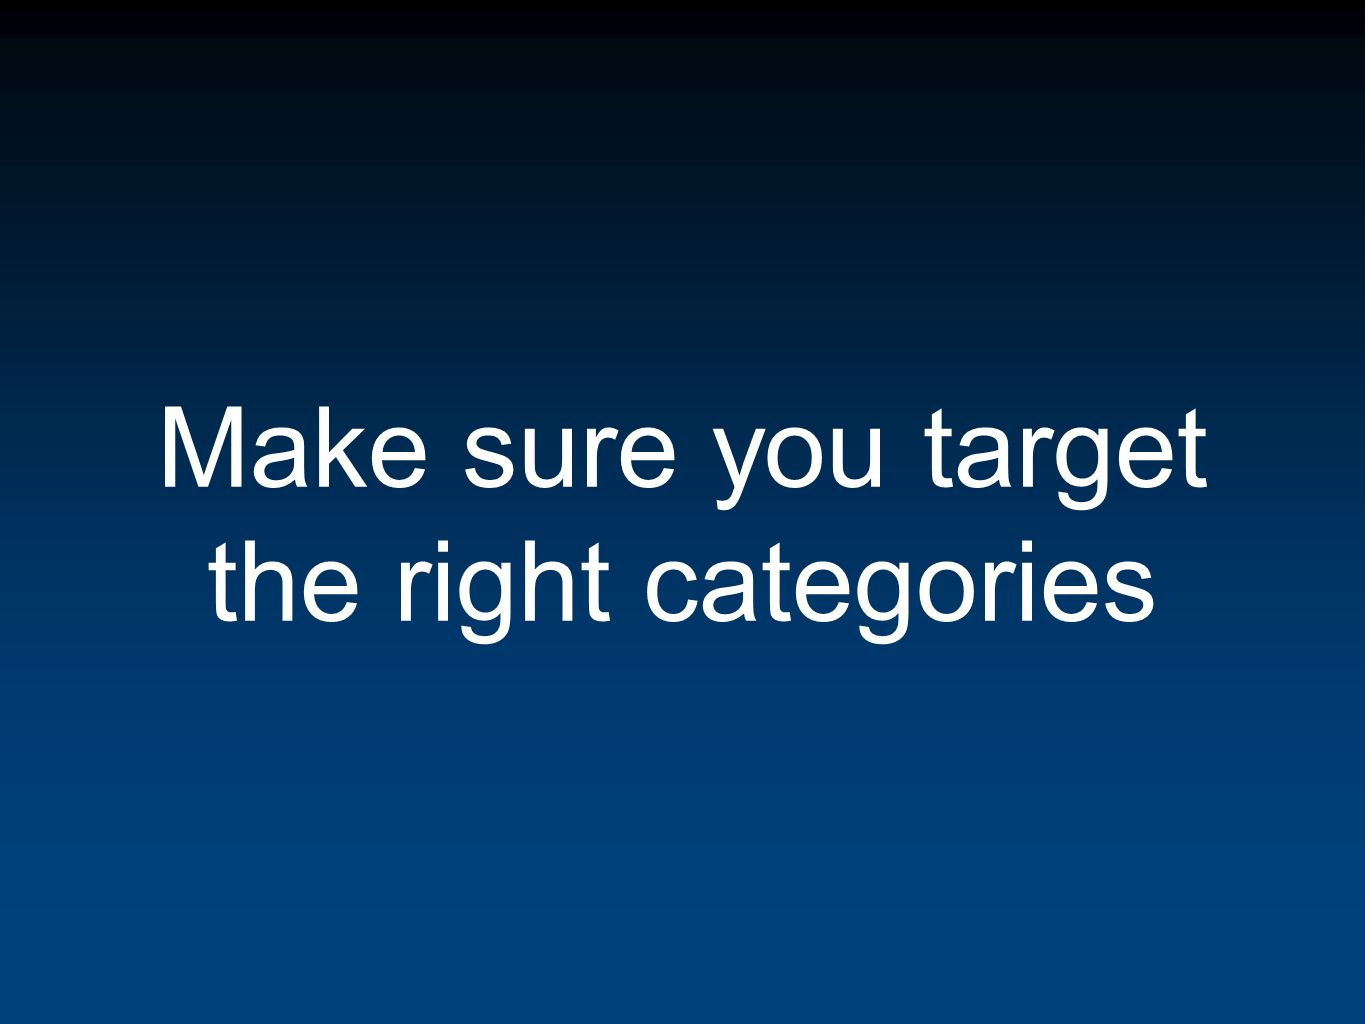 Make sure you target the right categories